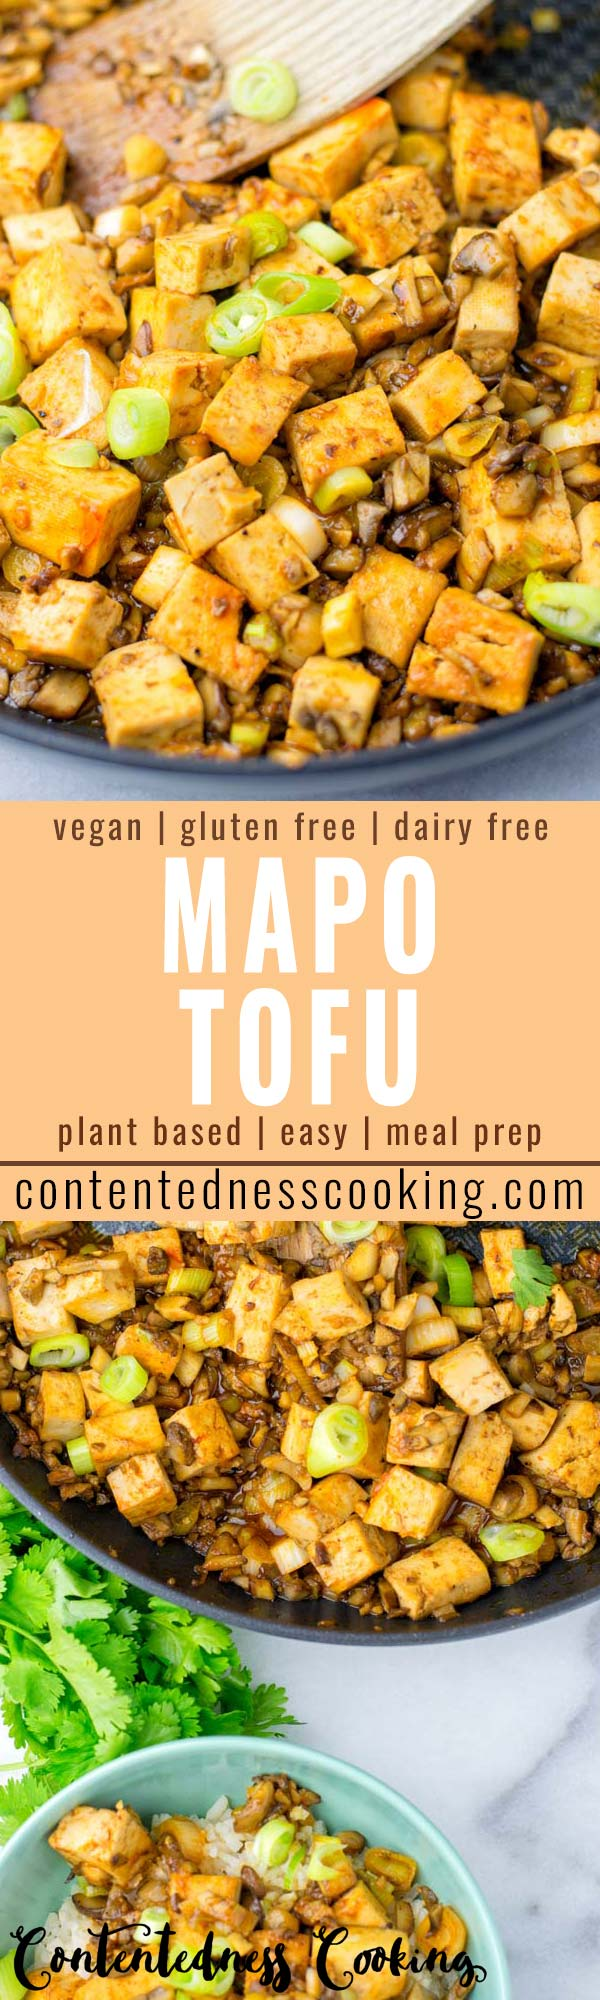 This Mapo Tofu is ready in under 15 minutes, versatile, flavor packed and protein rich. Serve plain or with rice and quinoa the ultimate Chinese comfort food made vegan plus gluten free, yum! #vegan #dairyfree #glutenfree #vegetarian #onepotmeals #contentednesscooking #15minutemeals #dinner #lunch #mealprep #budgetmeals #comfortfood #mapotofu